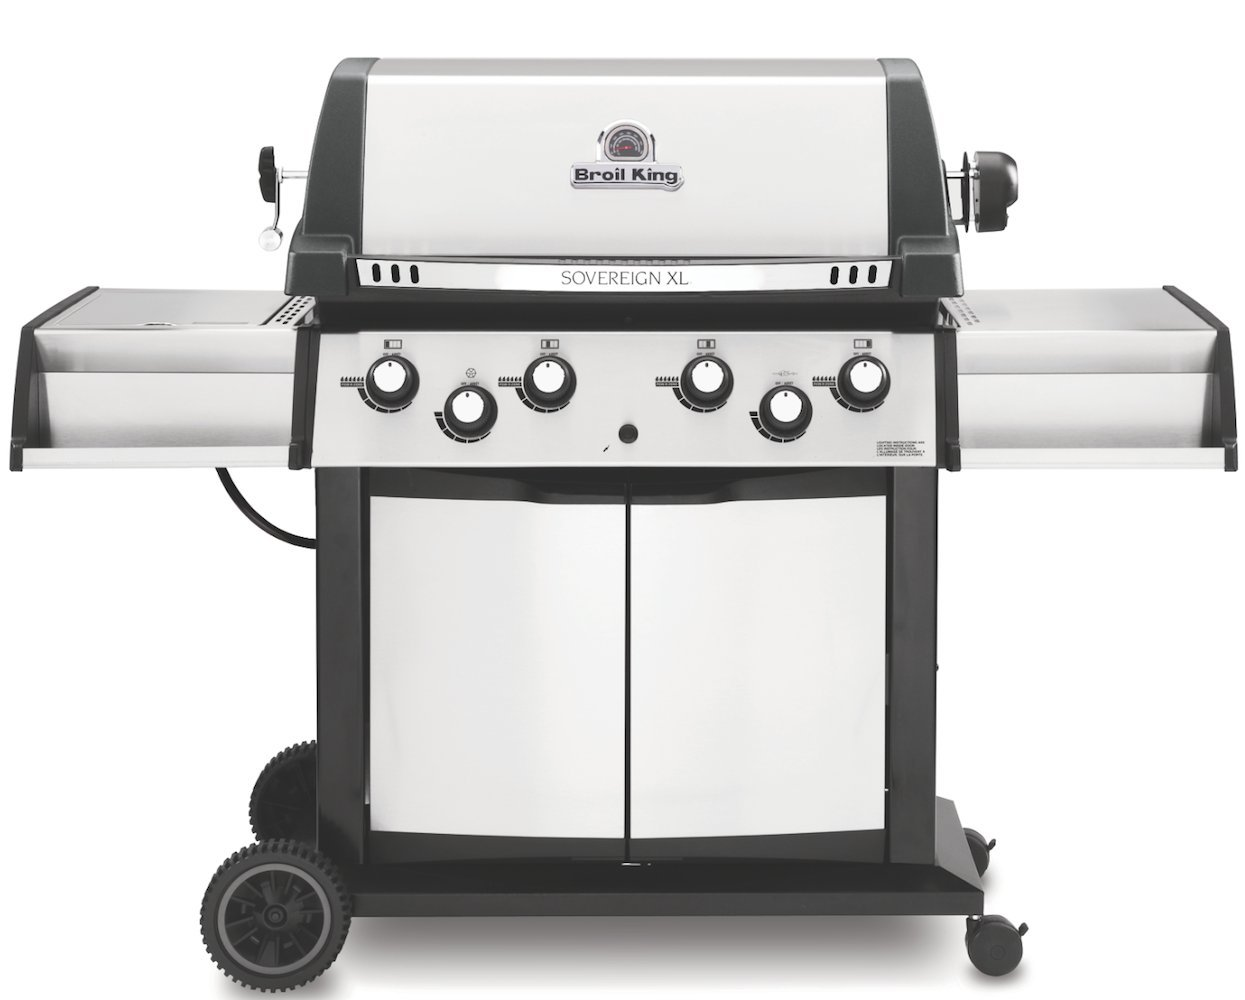 Rösle Gasgrill Porta : Broil king gasgrill sovereign xl 490 mod.2016: amazon.de: garten